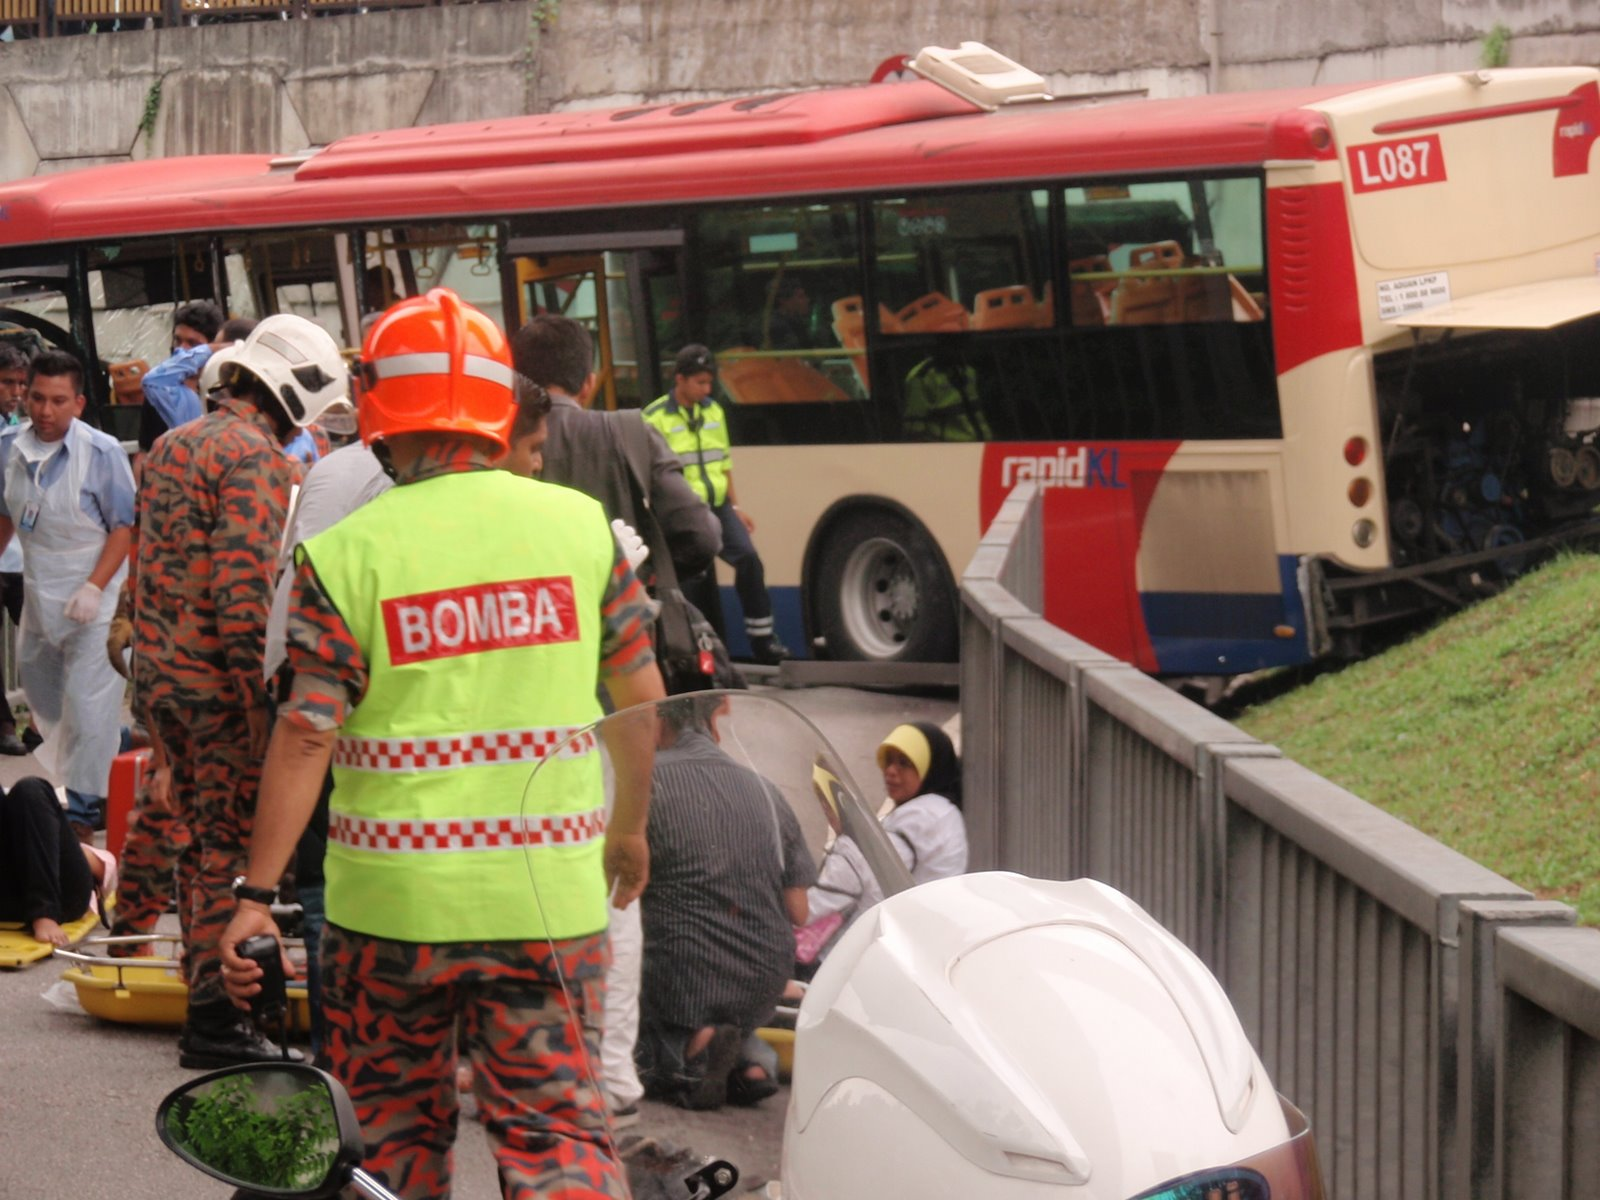 This image of the crashed bus clearly shows the identification code L087